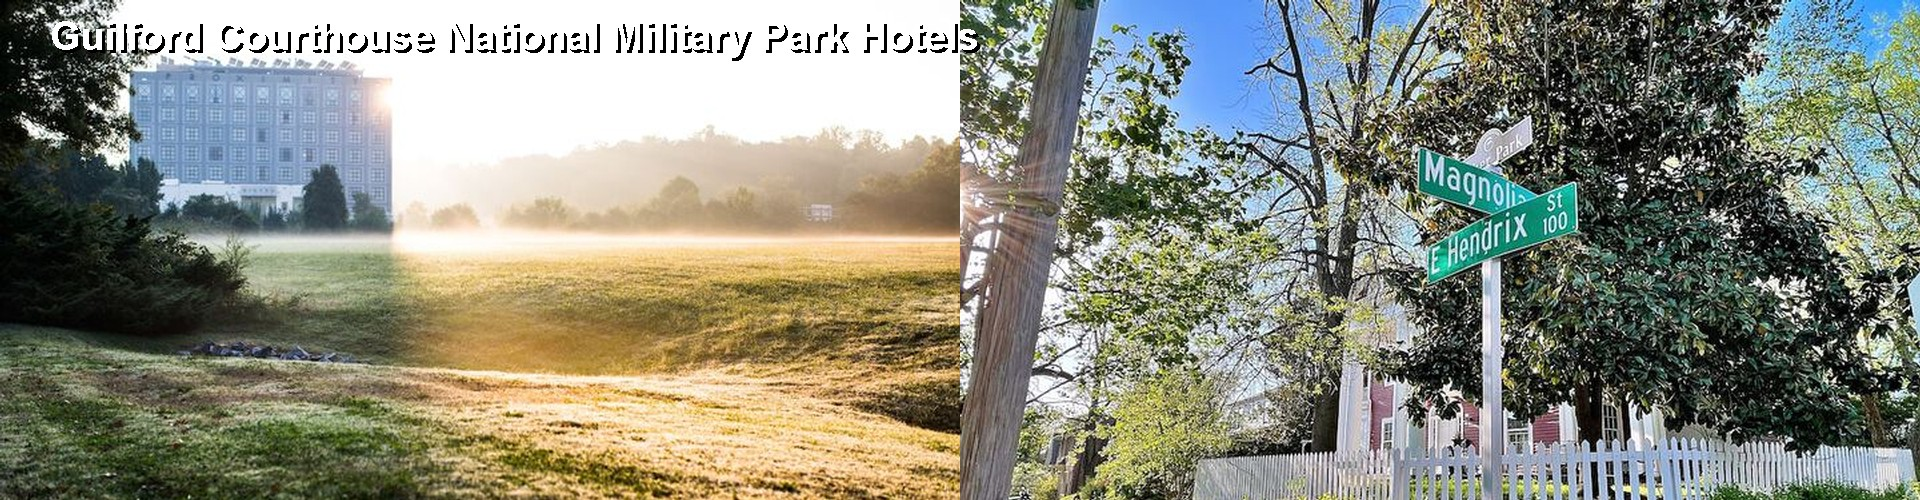 5 Best Hotels near Guilford Courthouse National Military Park